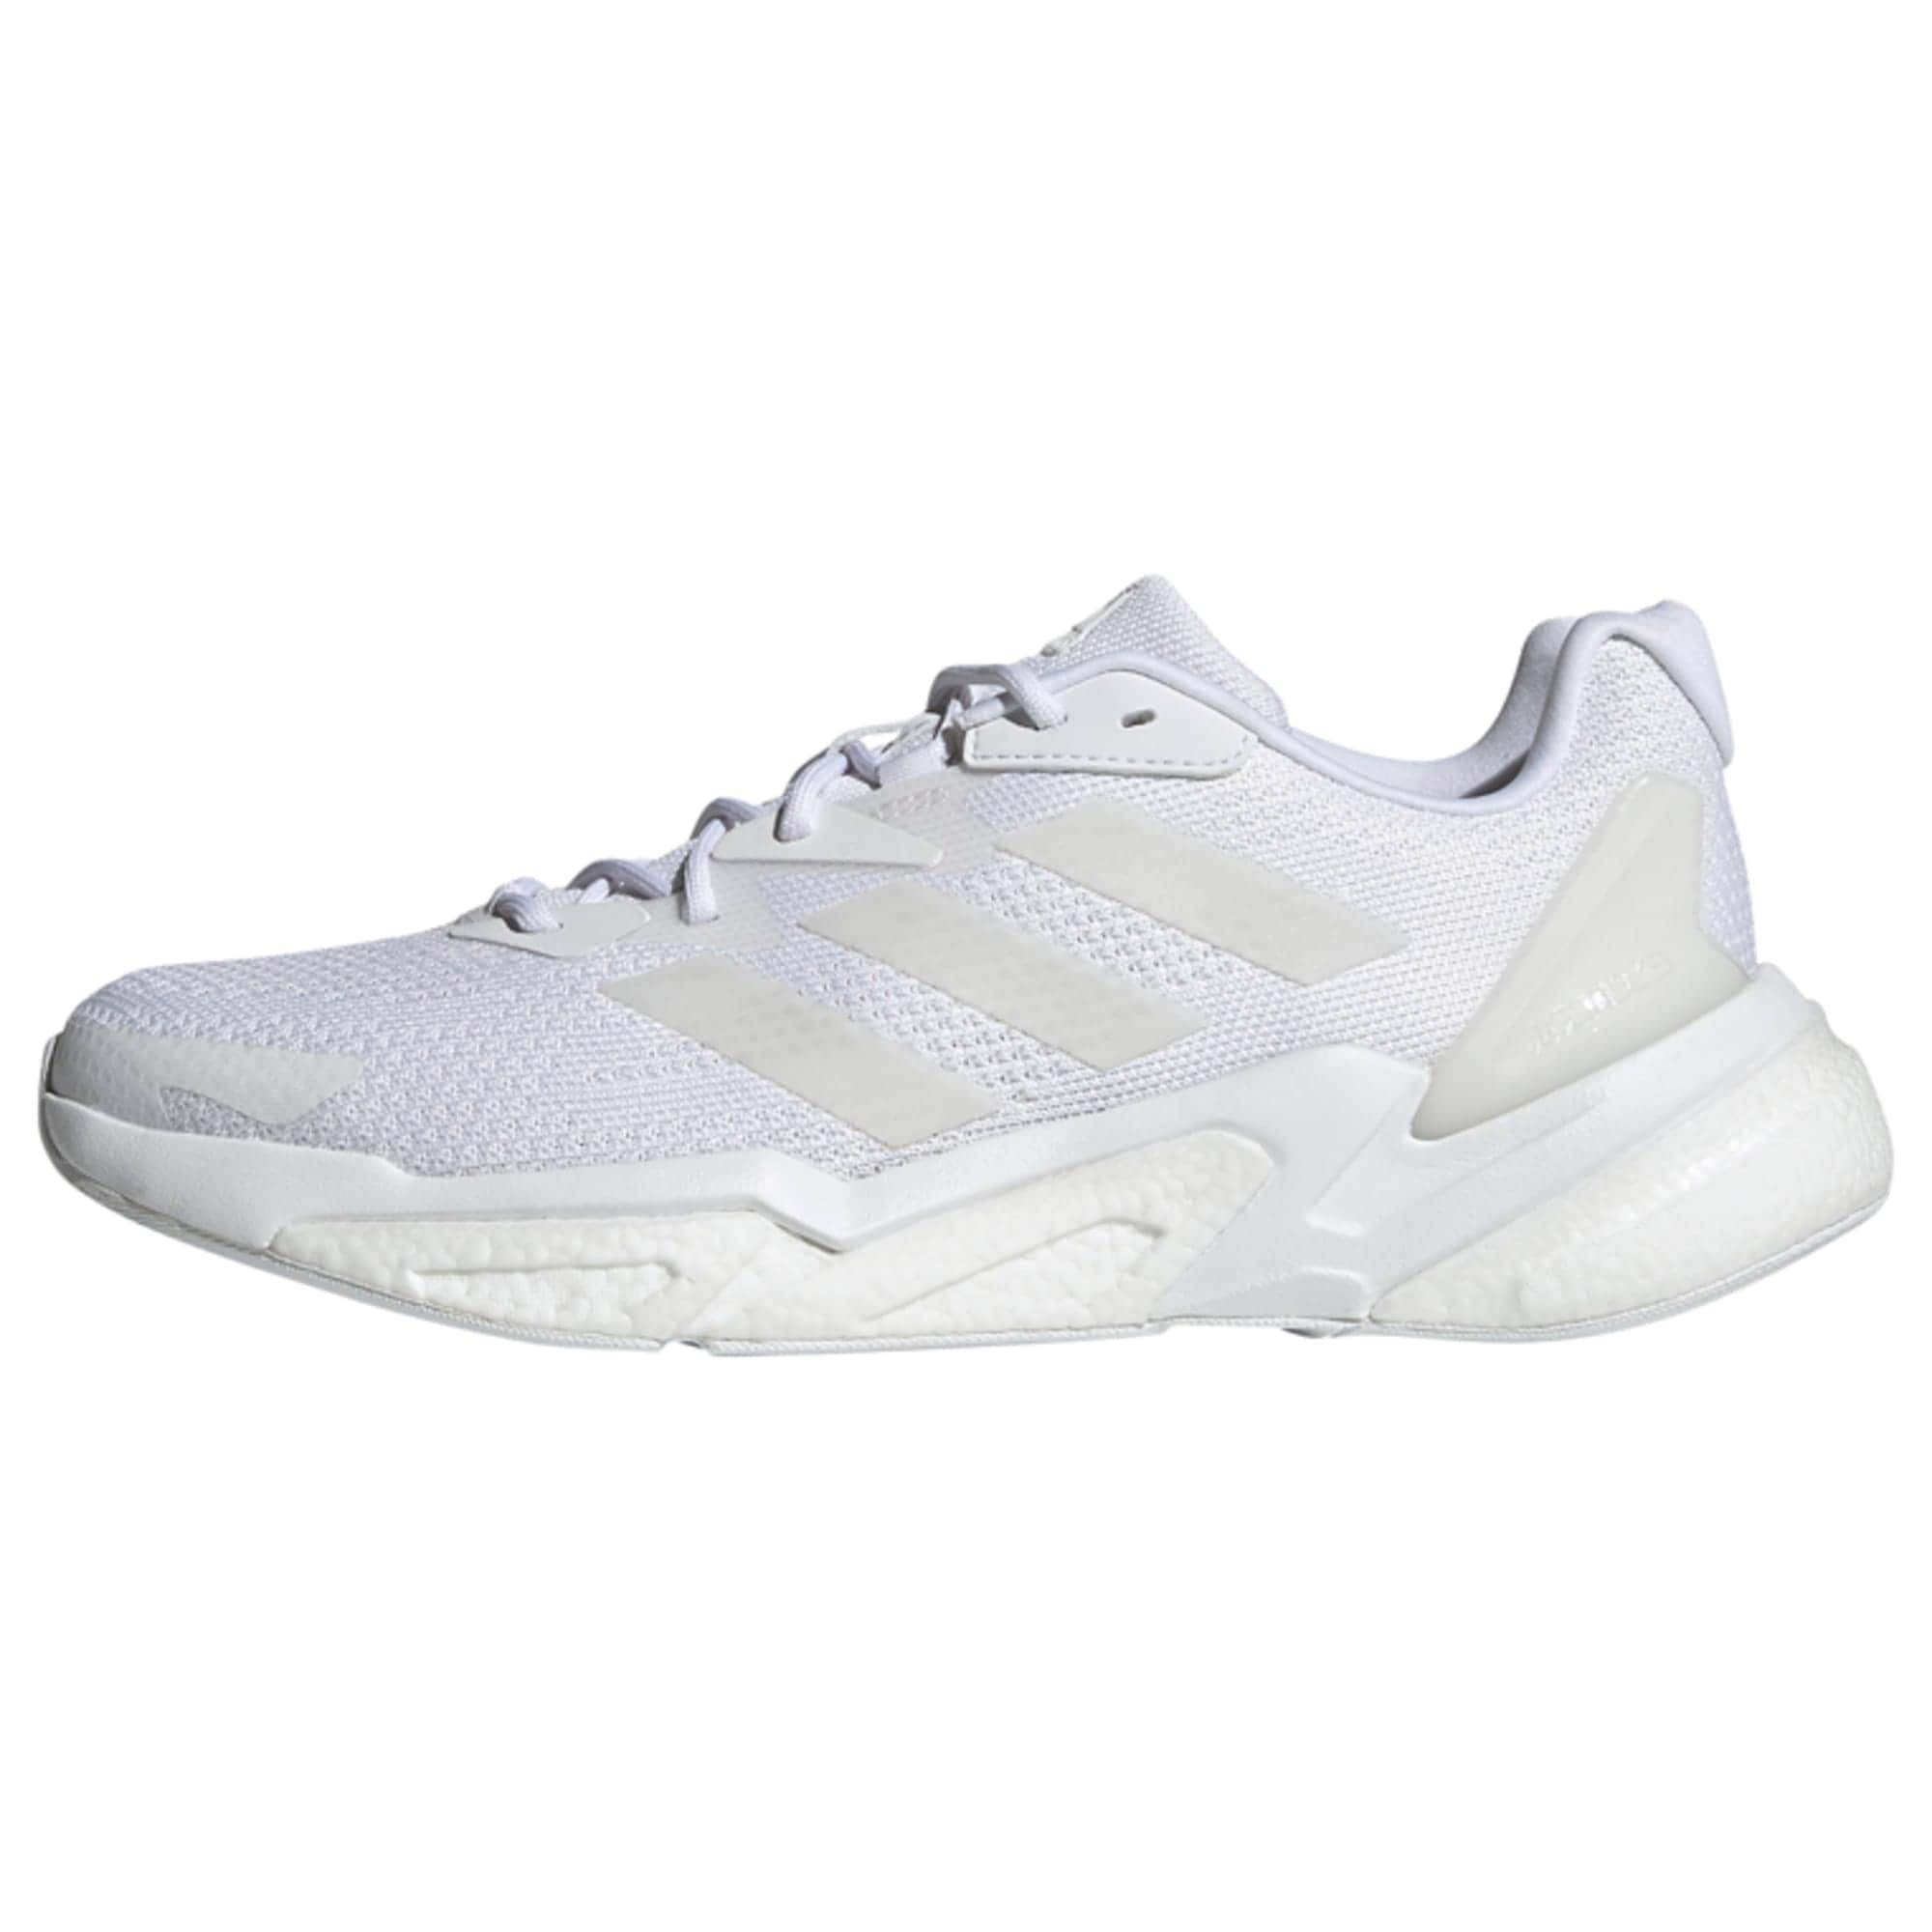 ADIDAS PERFORMANCE Chaussure de course  - Blanc - Taille: 10.5 - male